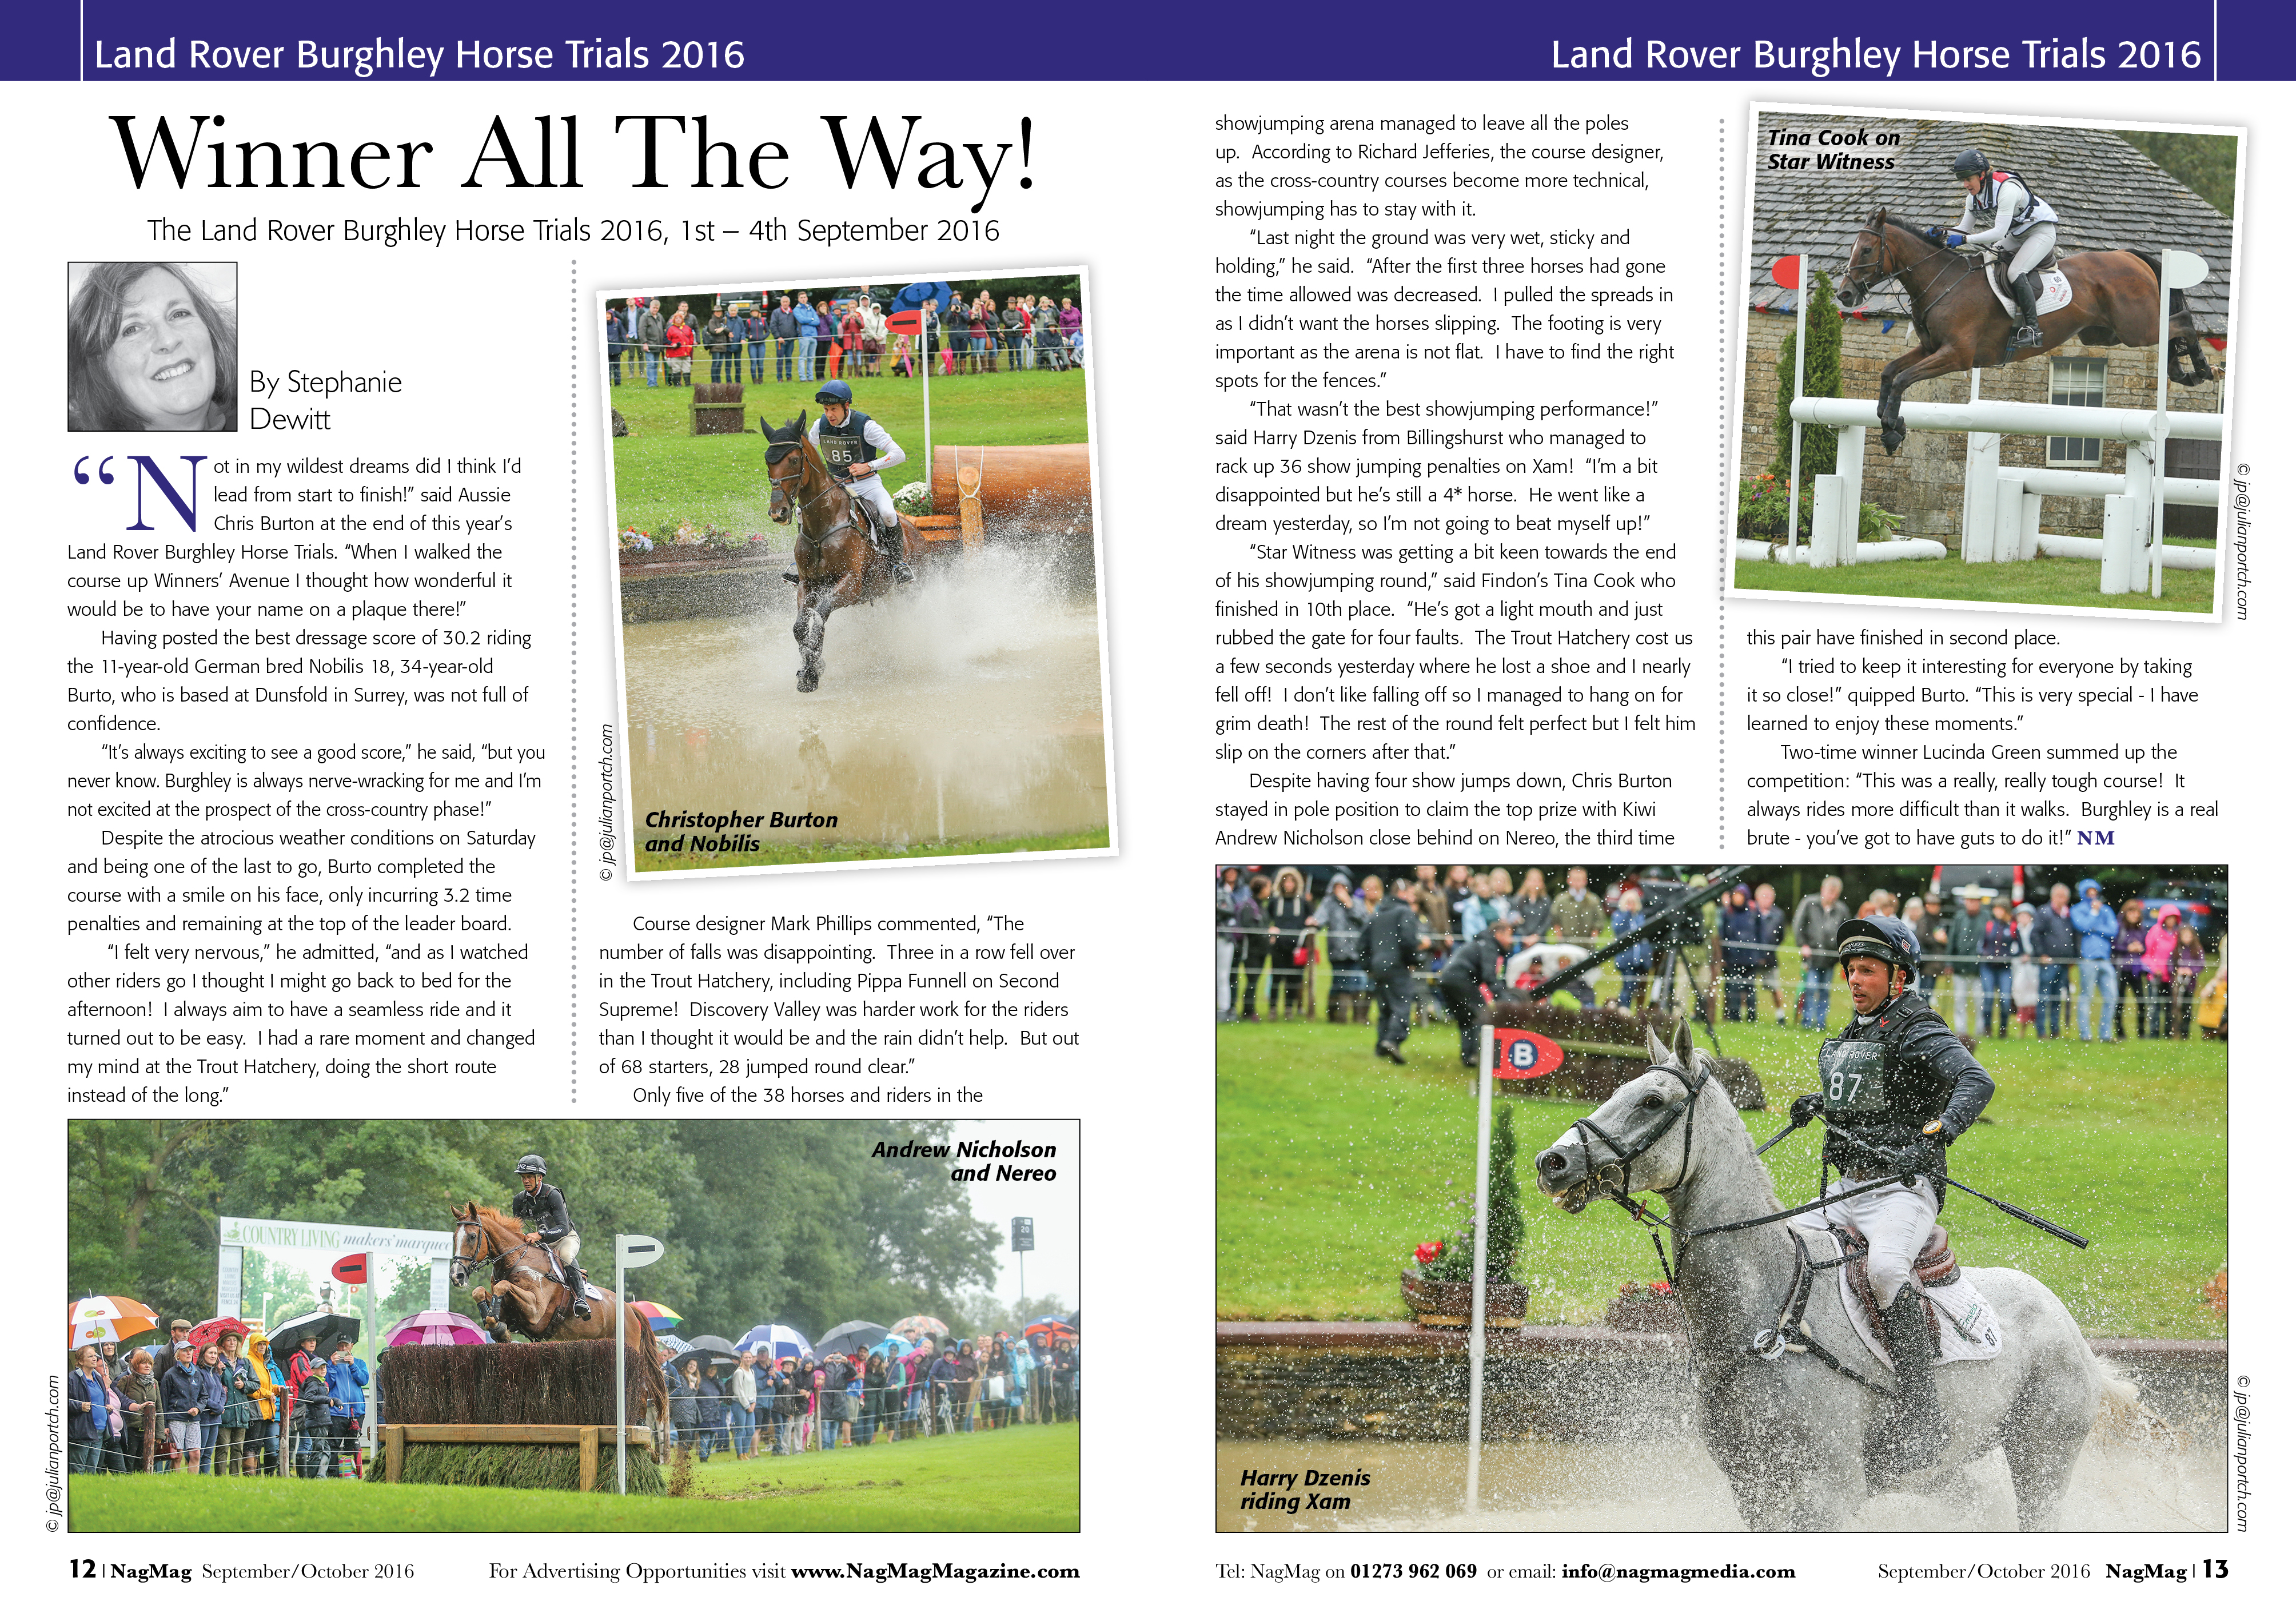 NagMag September 16 Burghley Spread for Julian